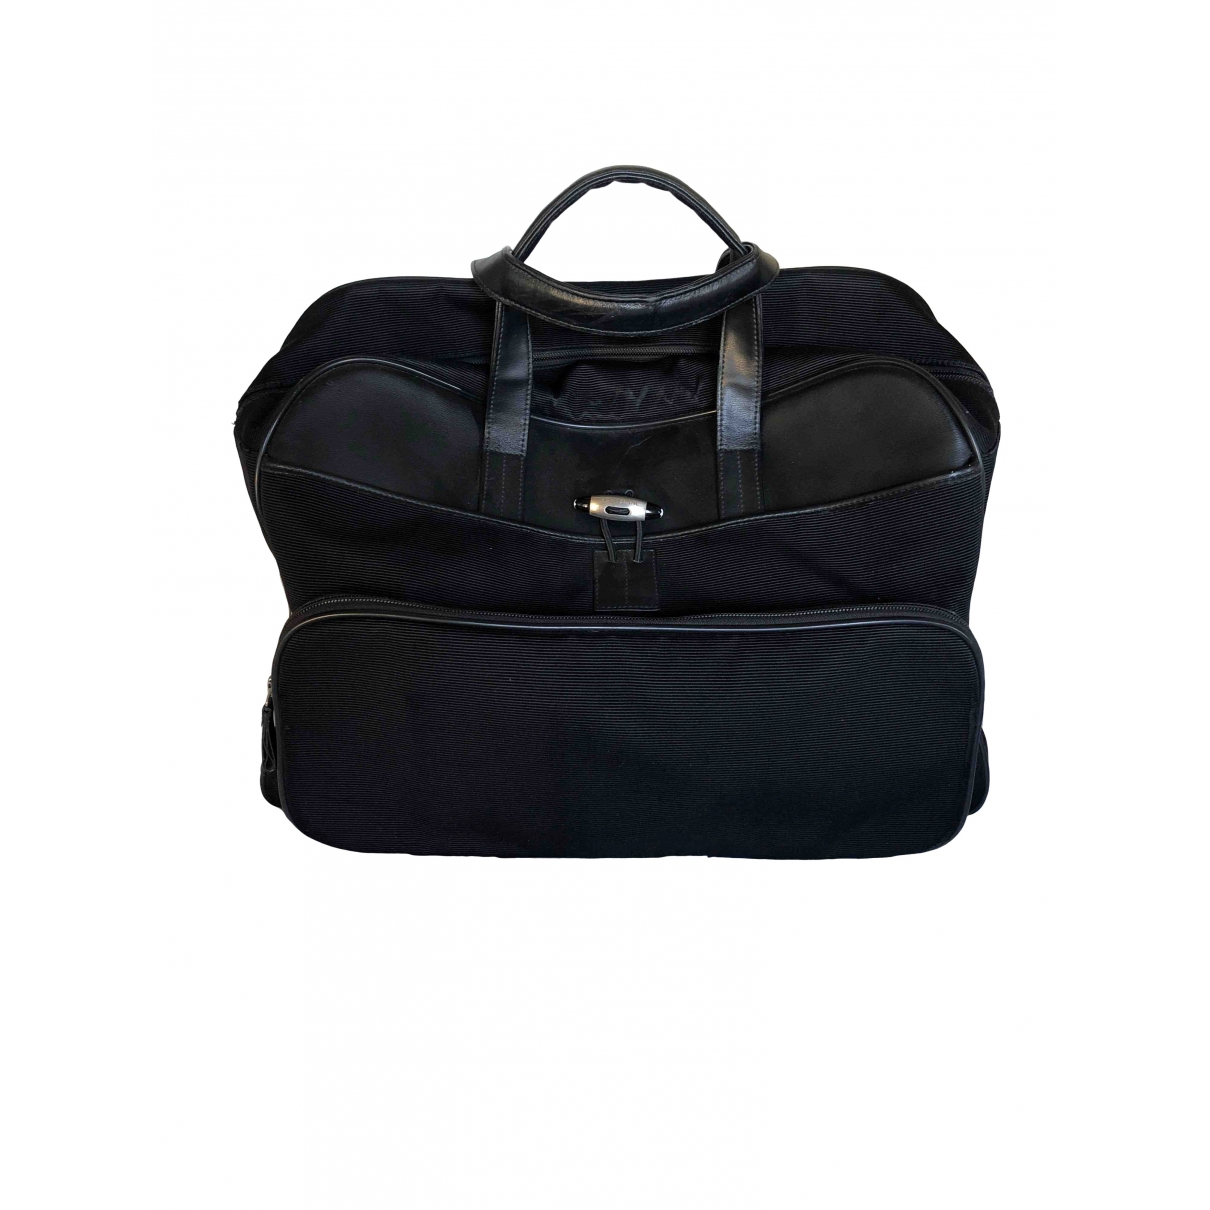 Montblanc \N Black Cloth handbag for Women \N